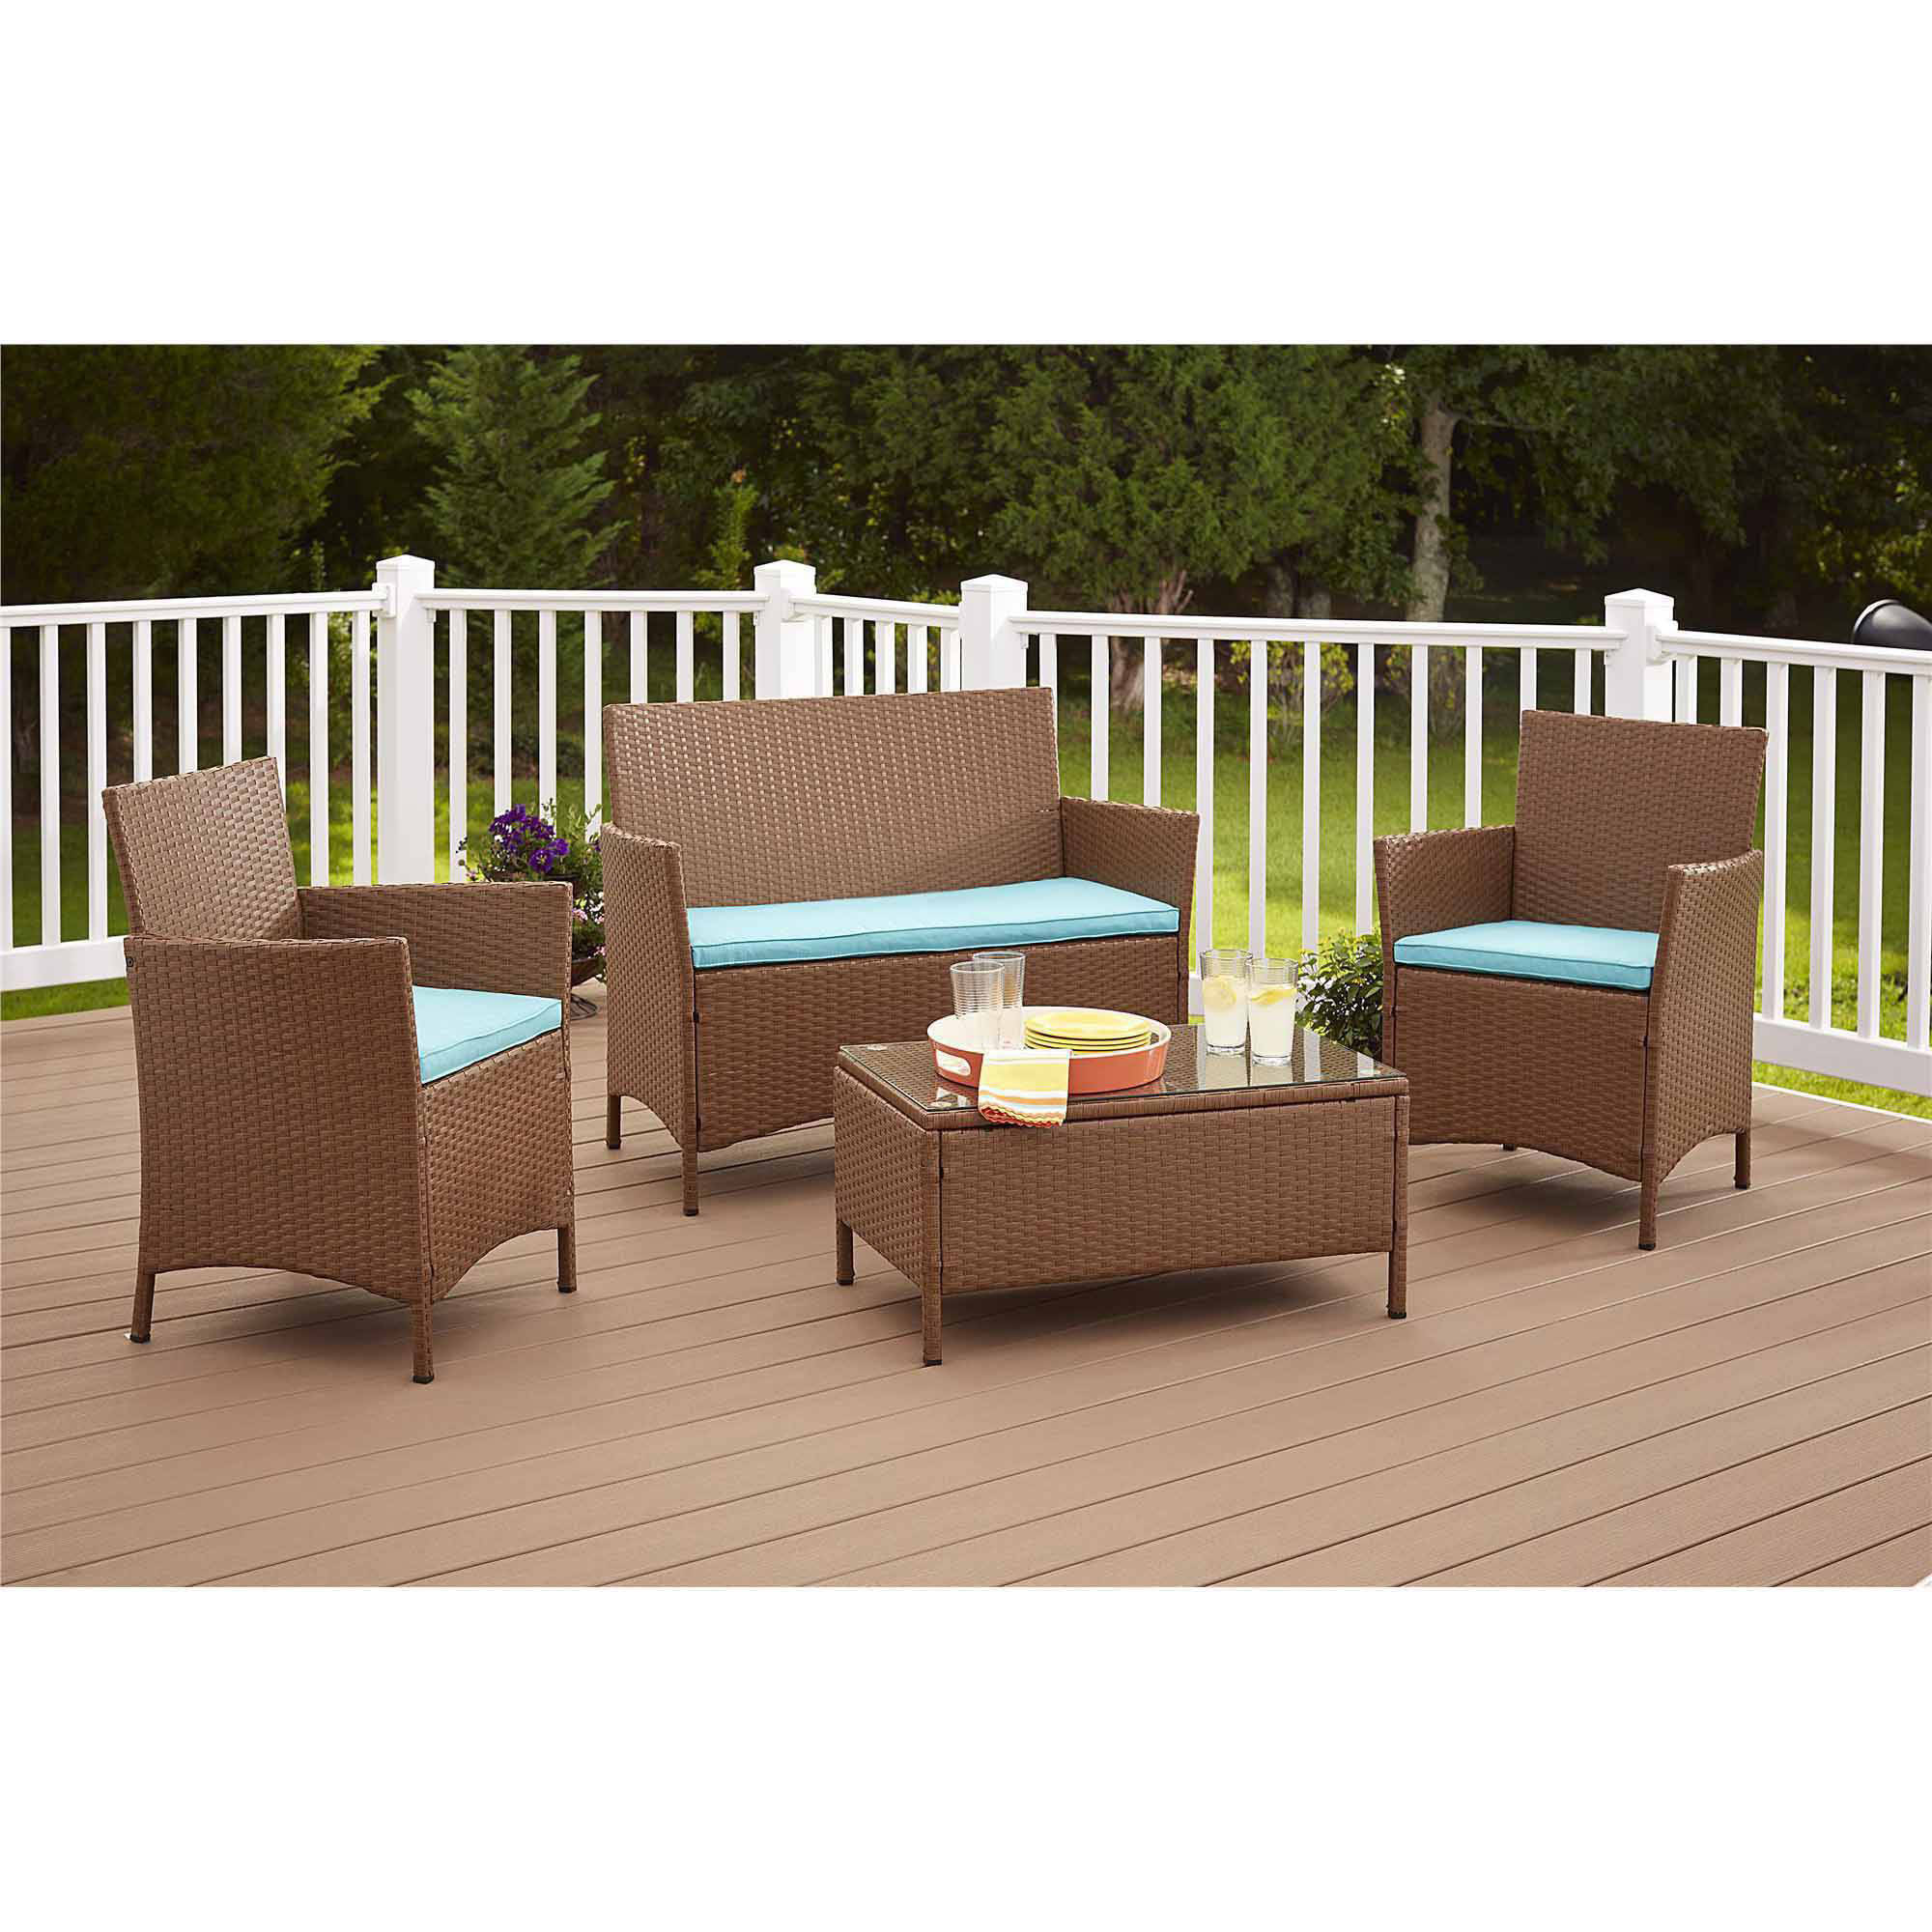 Cosco Outdoor Jamaica 4-Piece Resin Wicker Patio Conversation Set, Brown/Blue